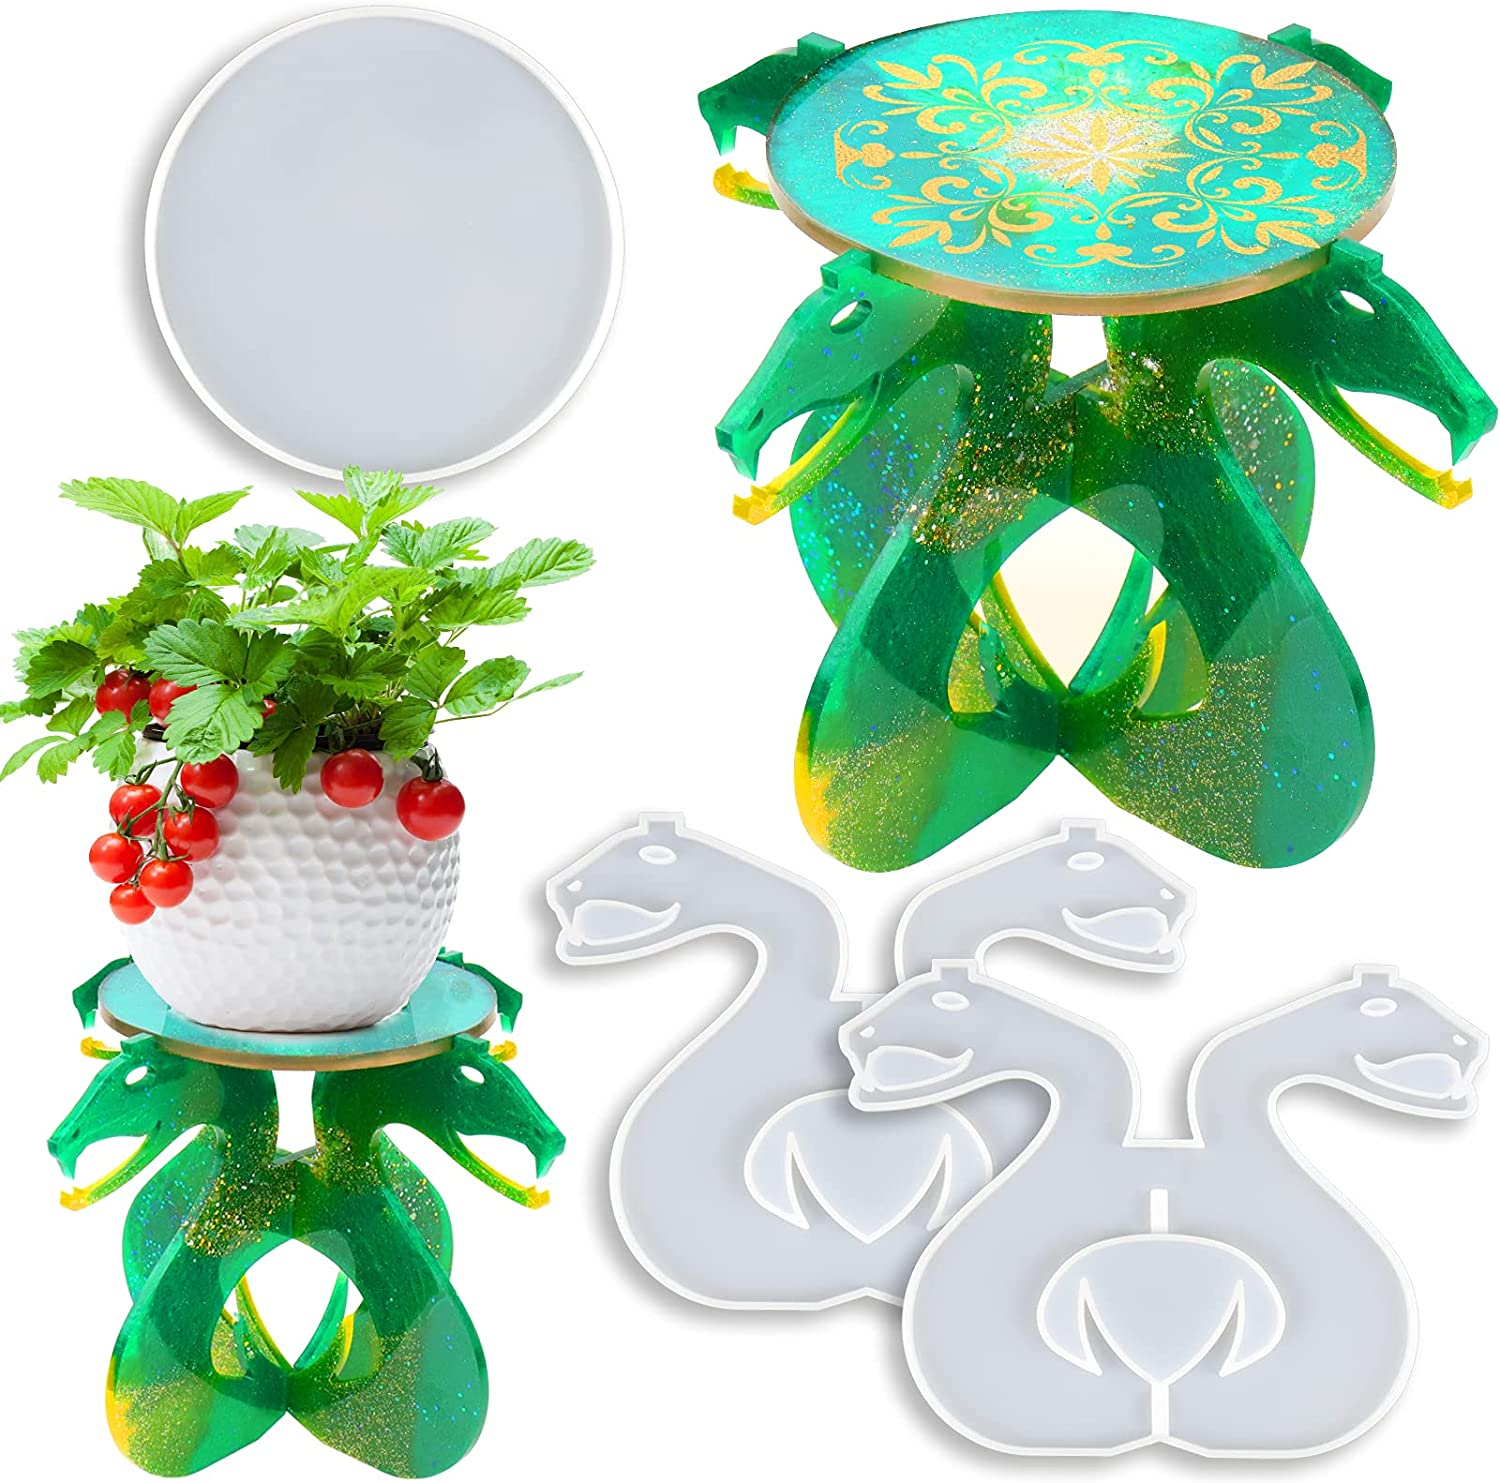 Resin Molds Sales Silicone Potted Plants Stand Ho Dragon Shape service Unique